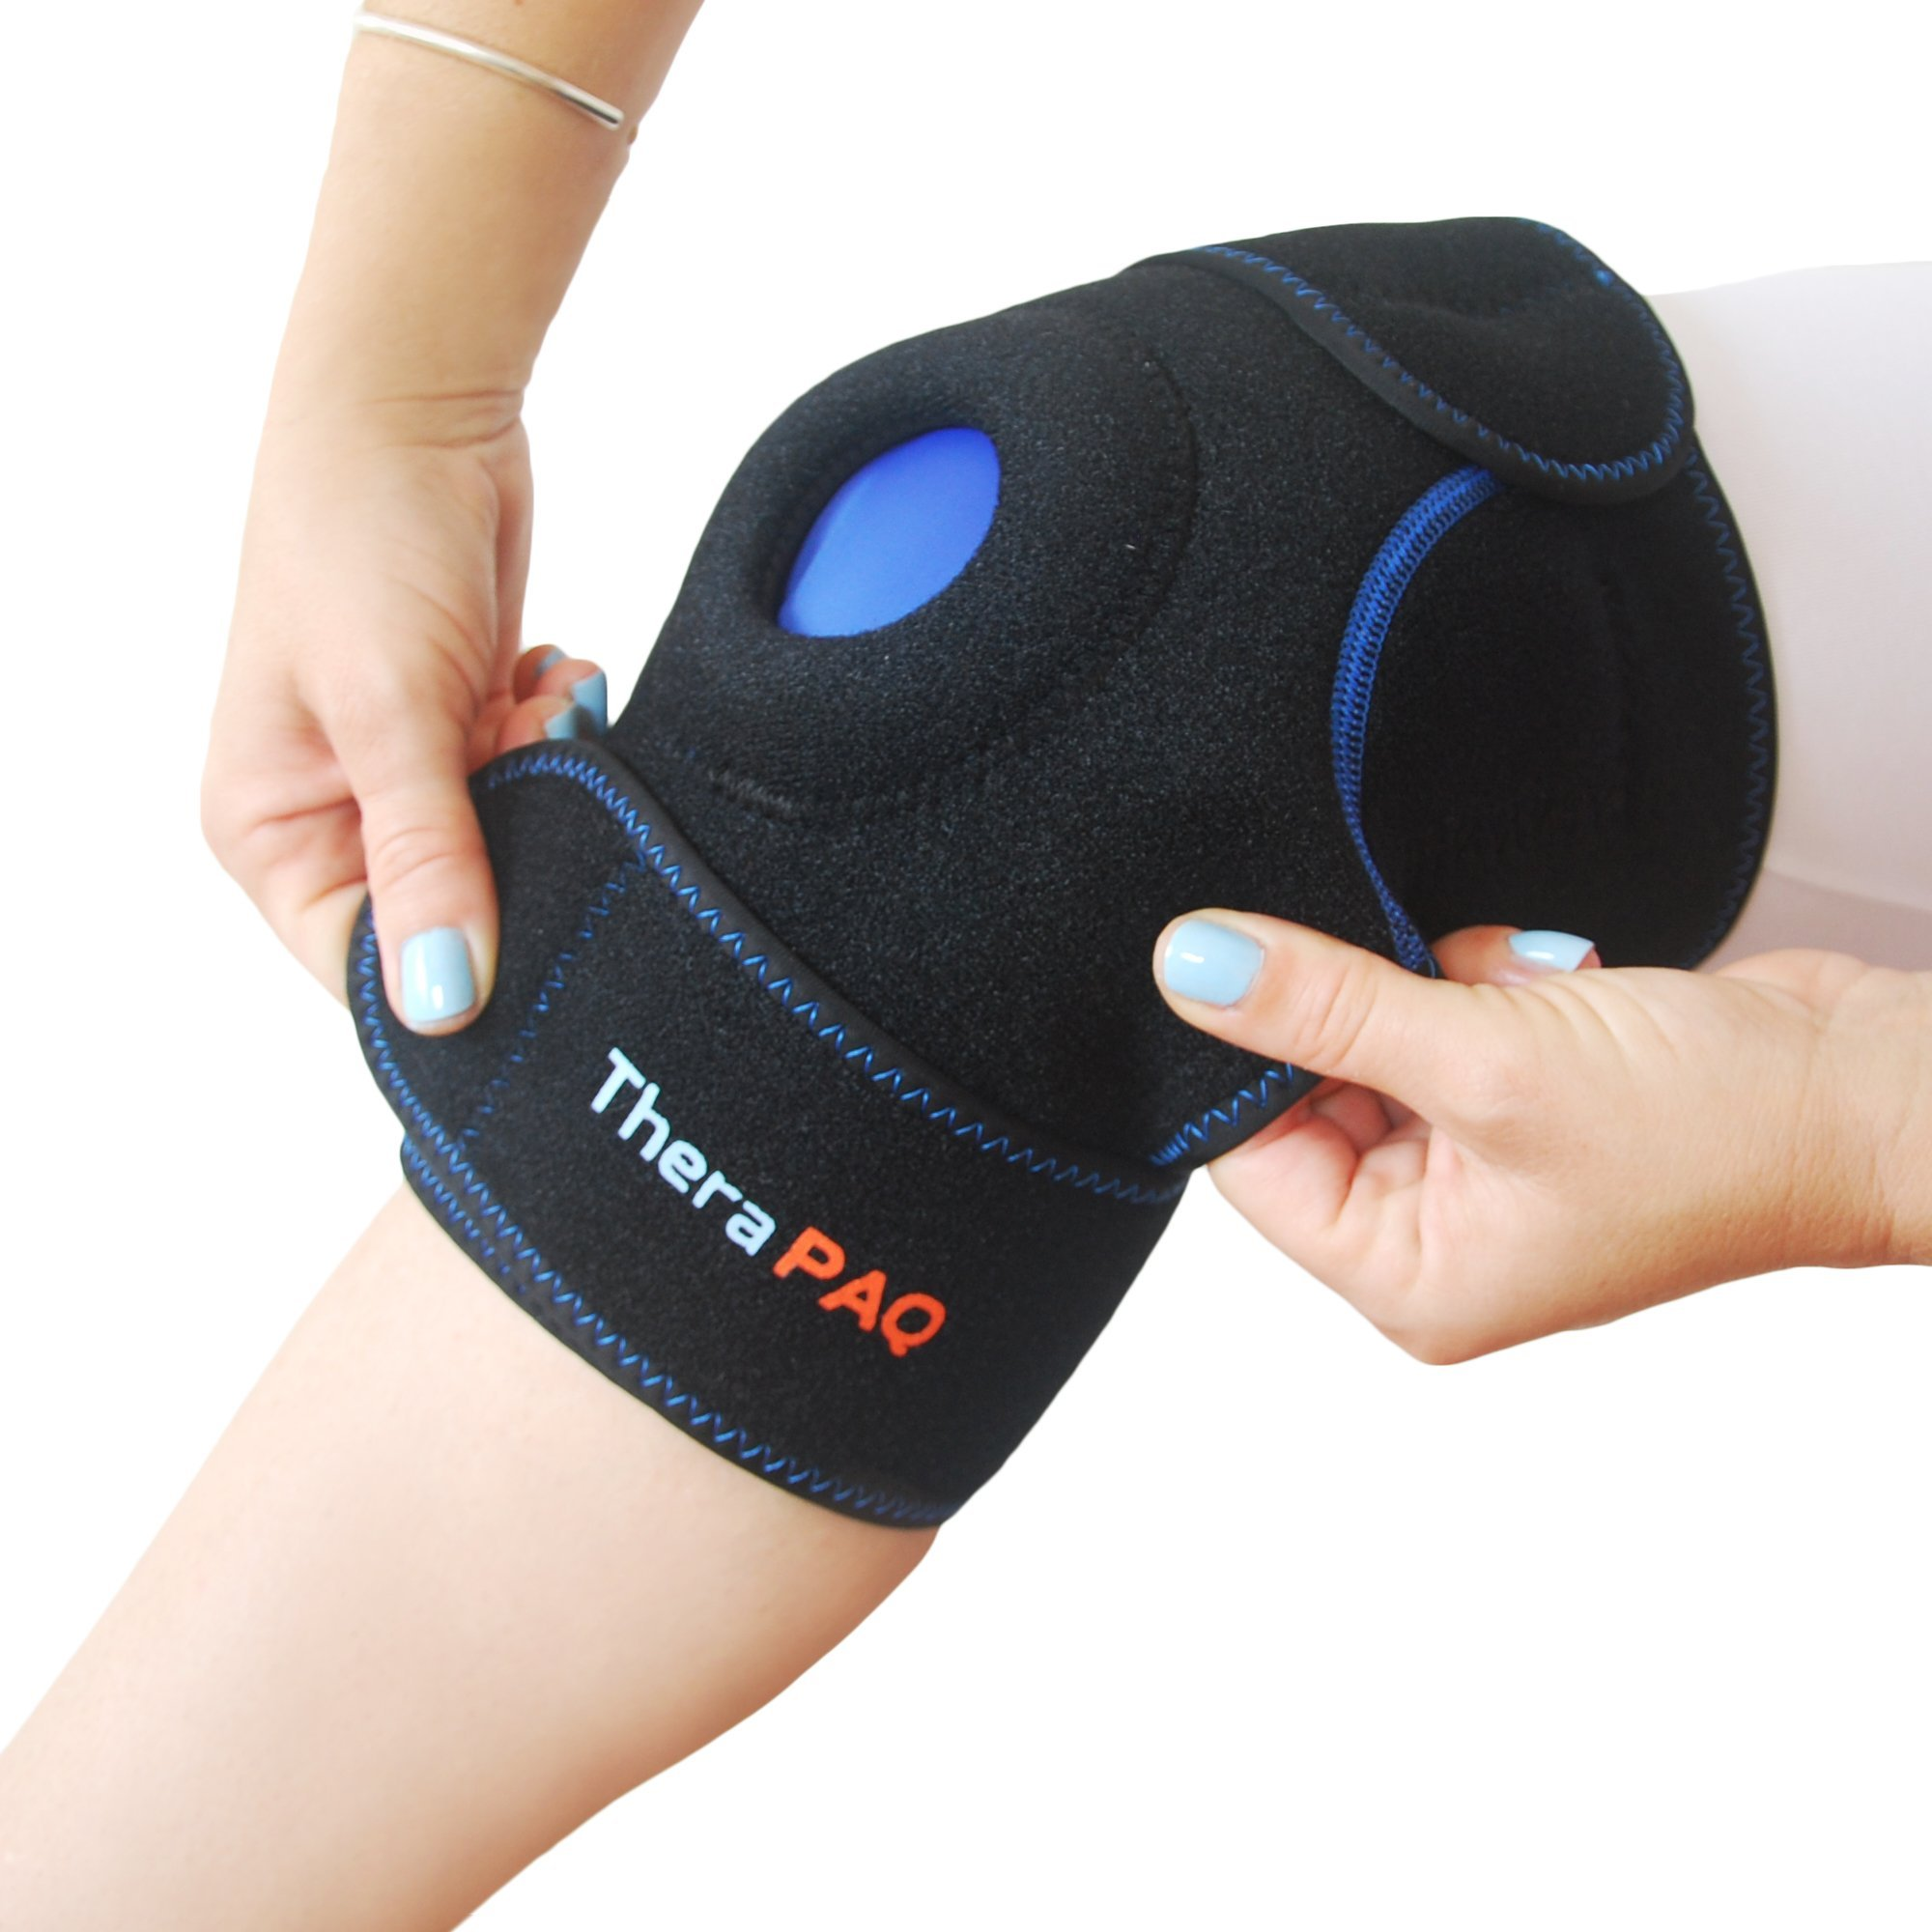 Knee Ice Pack Wrap by TheraPAQ – Hot & Cold Therapy Support Brace for Knees – Best for Bursitis Pain Relief, Meniscus Tear, Rheumatoid Arthritis, Injuries, Recovery, Swelling, Aches, Bruises & Sprains